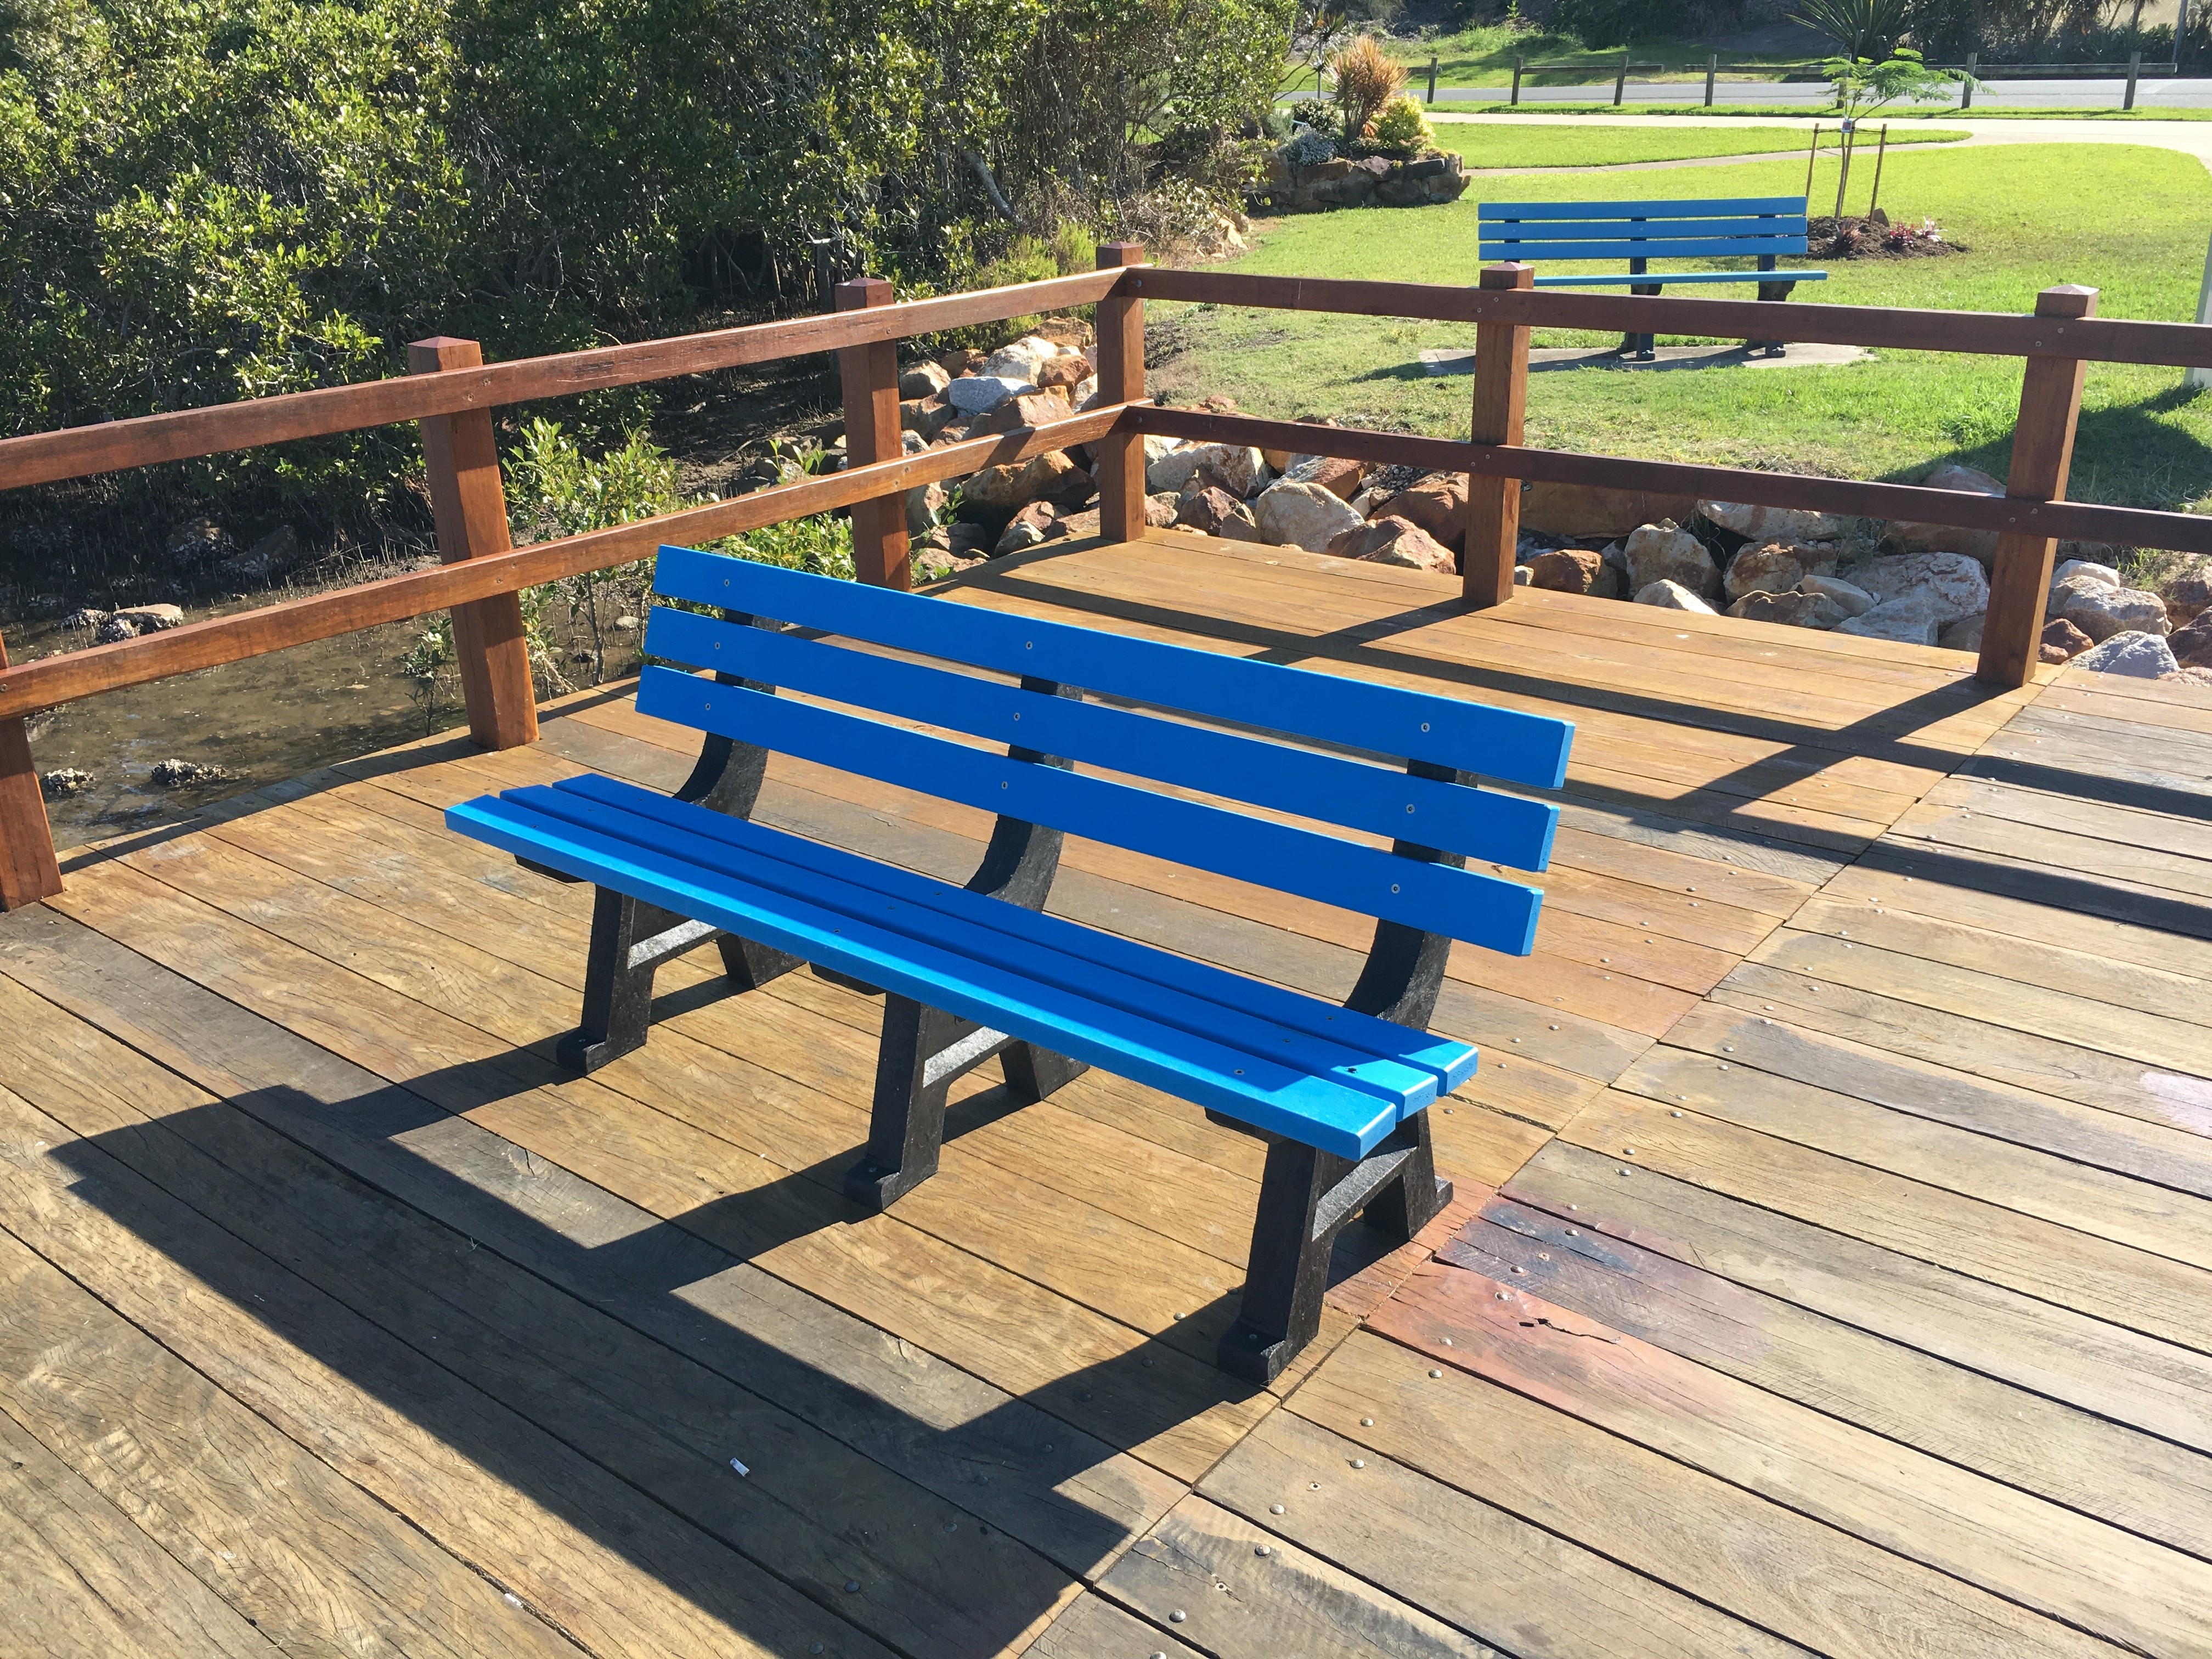 Benches archives replas is an australian company that has developed world leading technology Playground benches